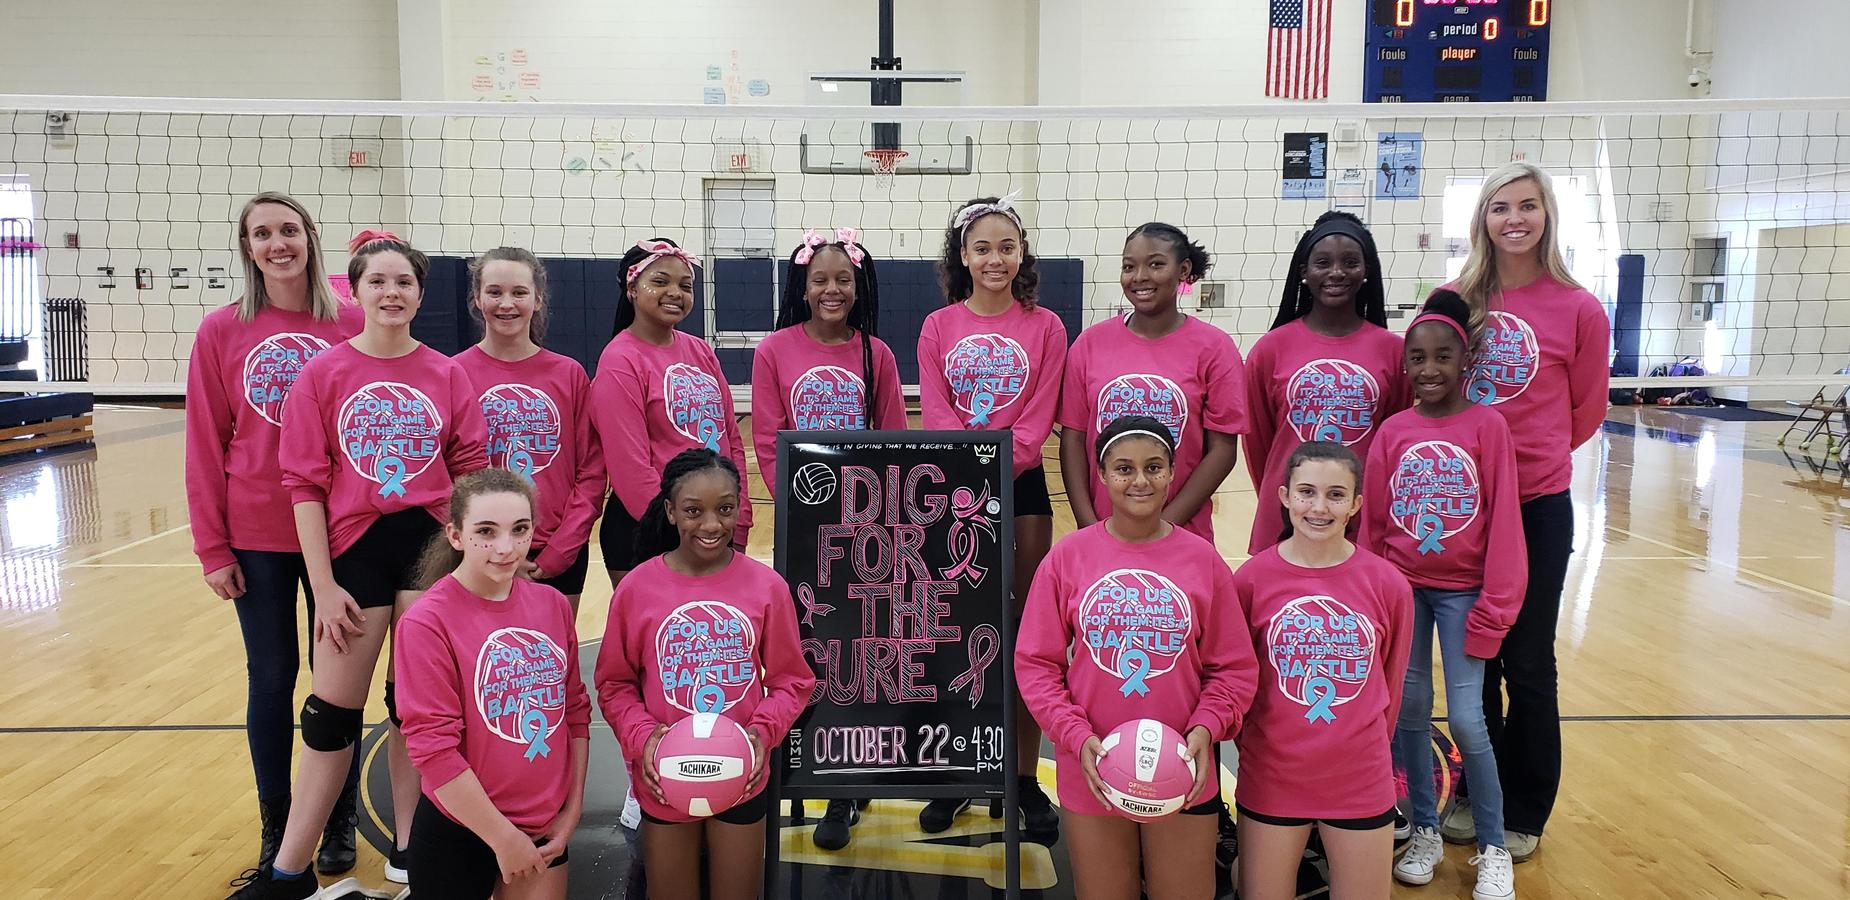 Volleyball team at annual Dig for the Cure match